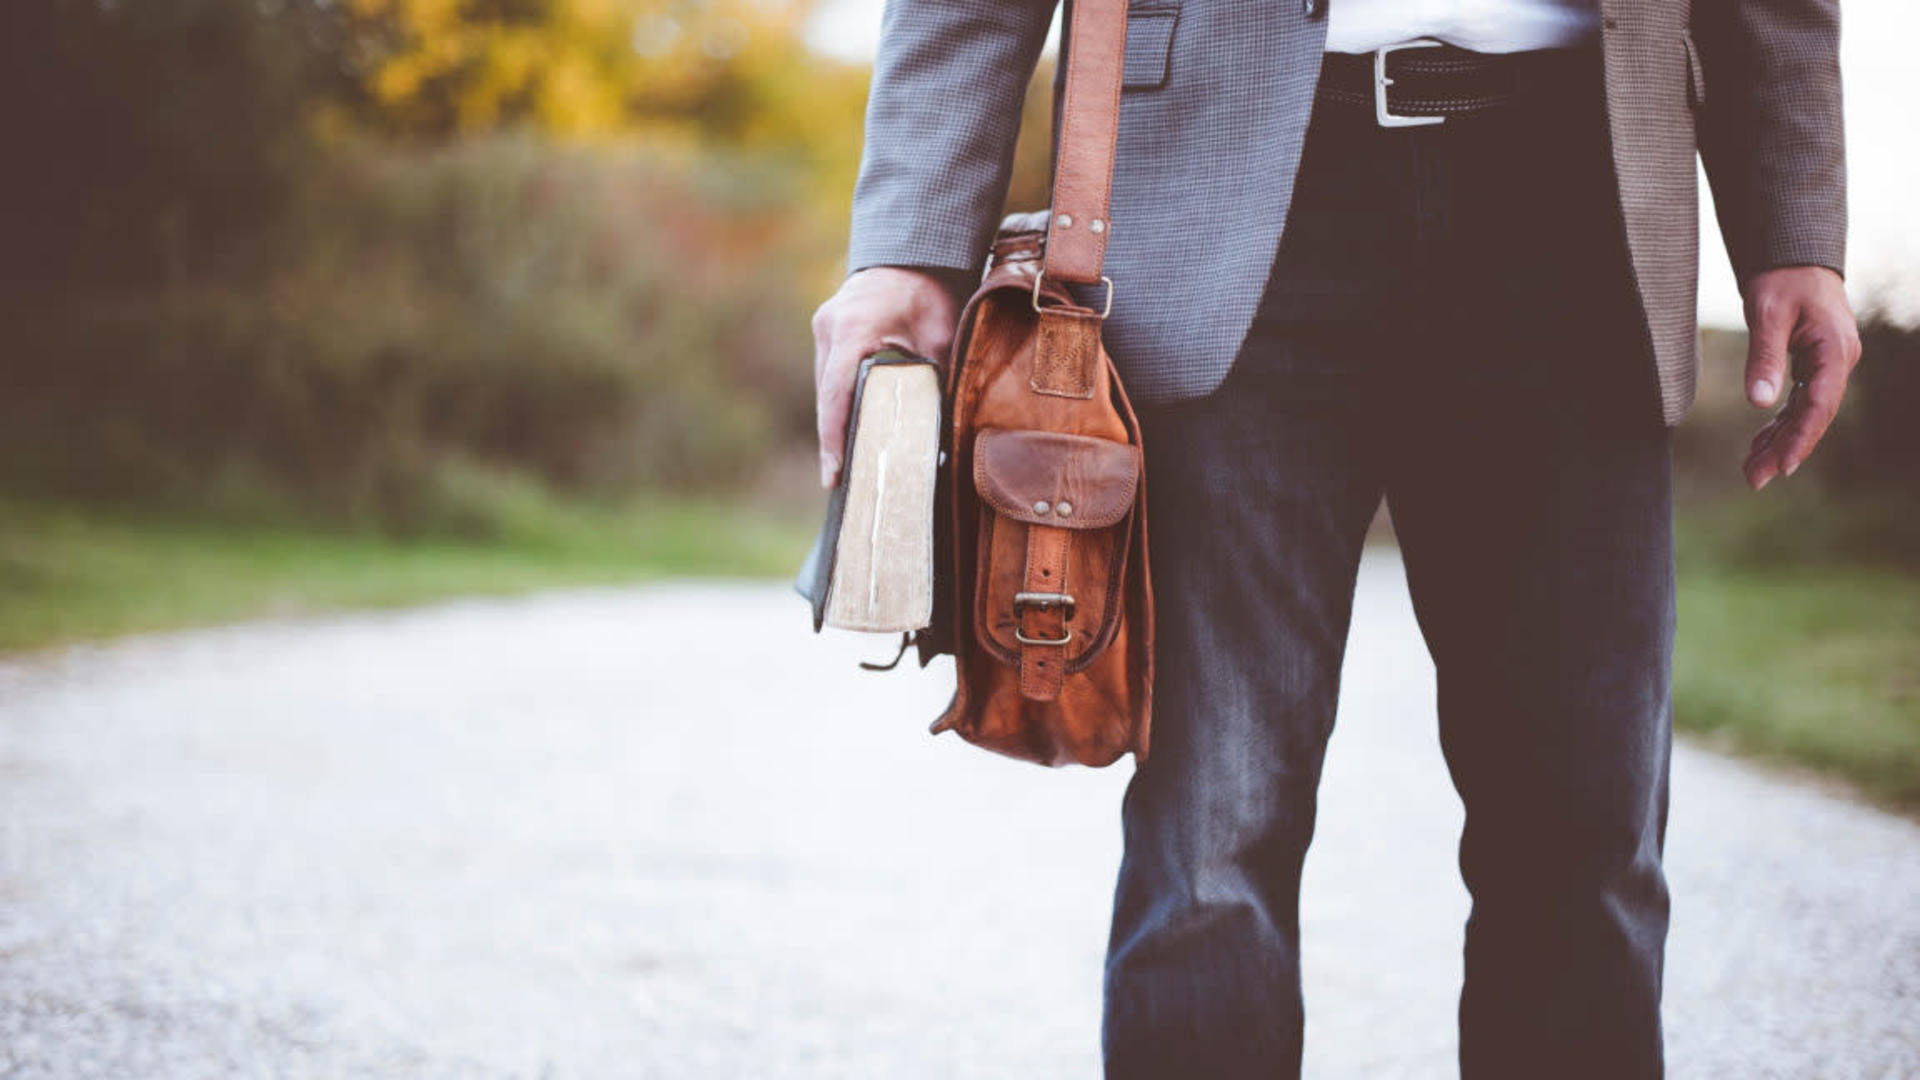 Man carrying Bible and satchel